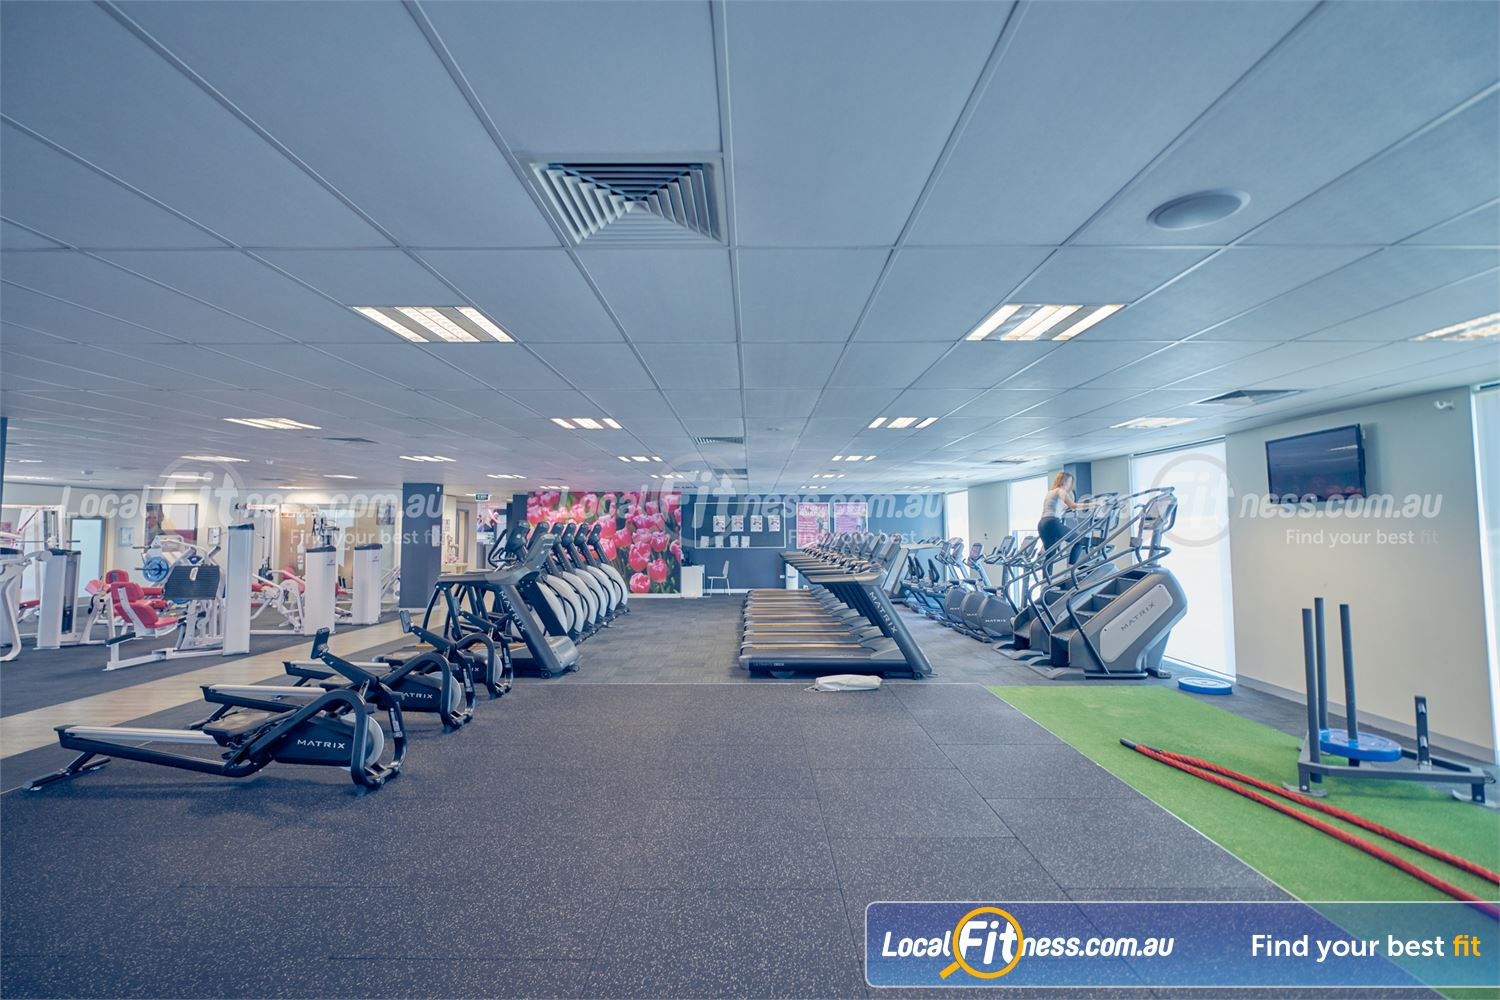 Fernwood Fitness Cairnlea Welcome to Fernwood Fitness Cairnlea women's gym.